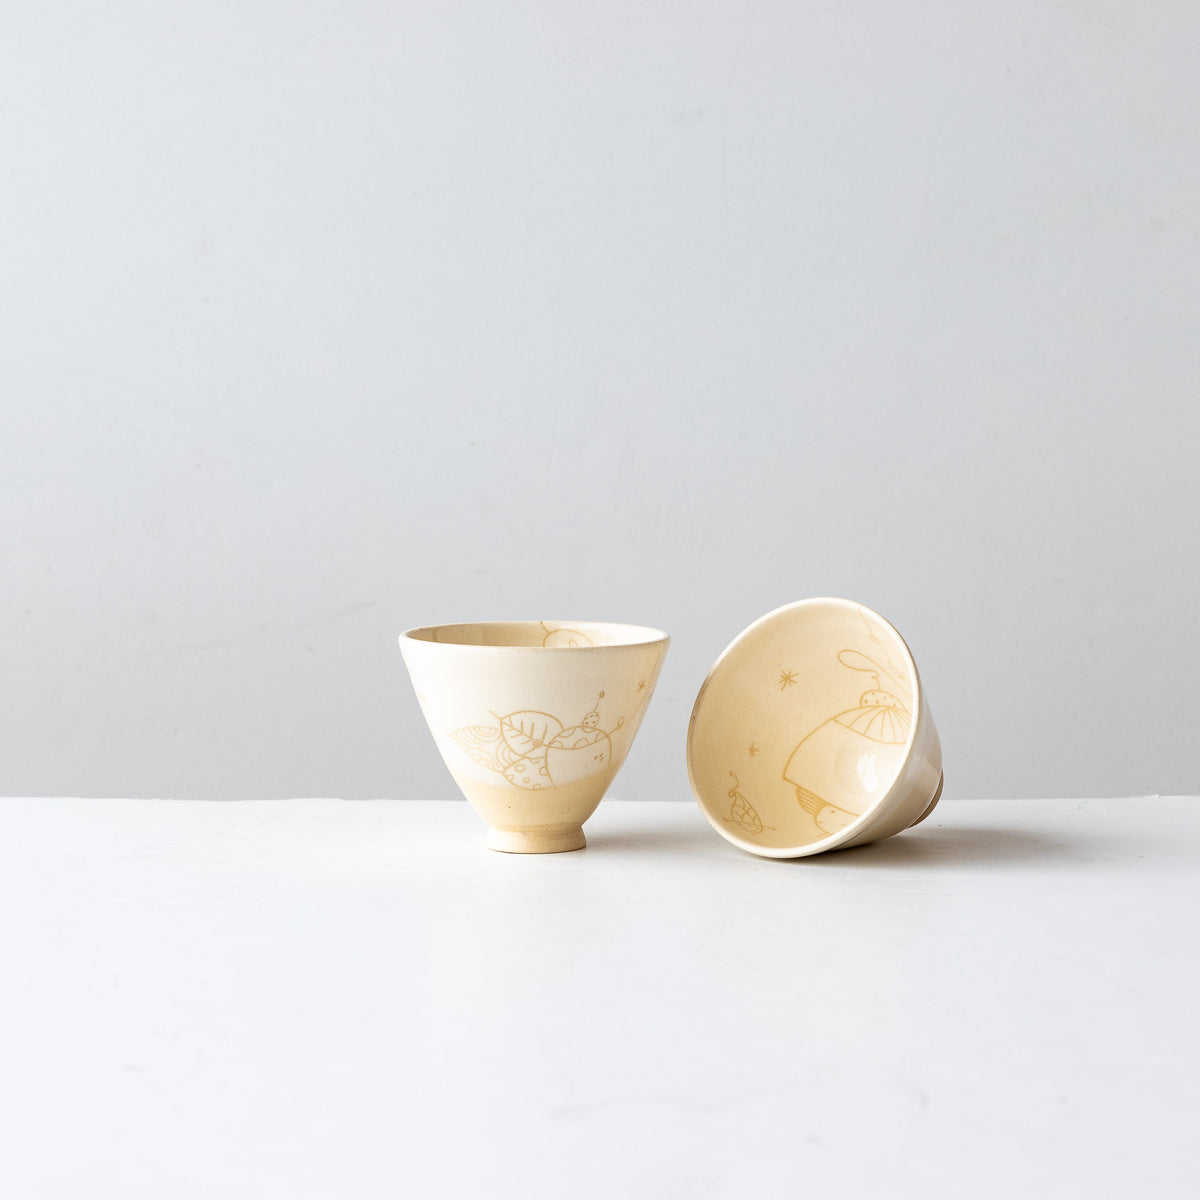 Two Creamy White Lil' Hand Painted Earthenware Bowls - Sold by Chic & Basta